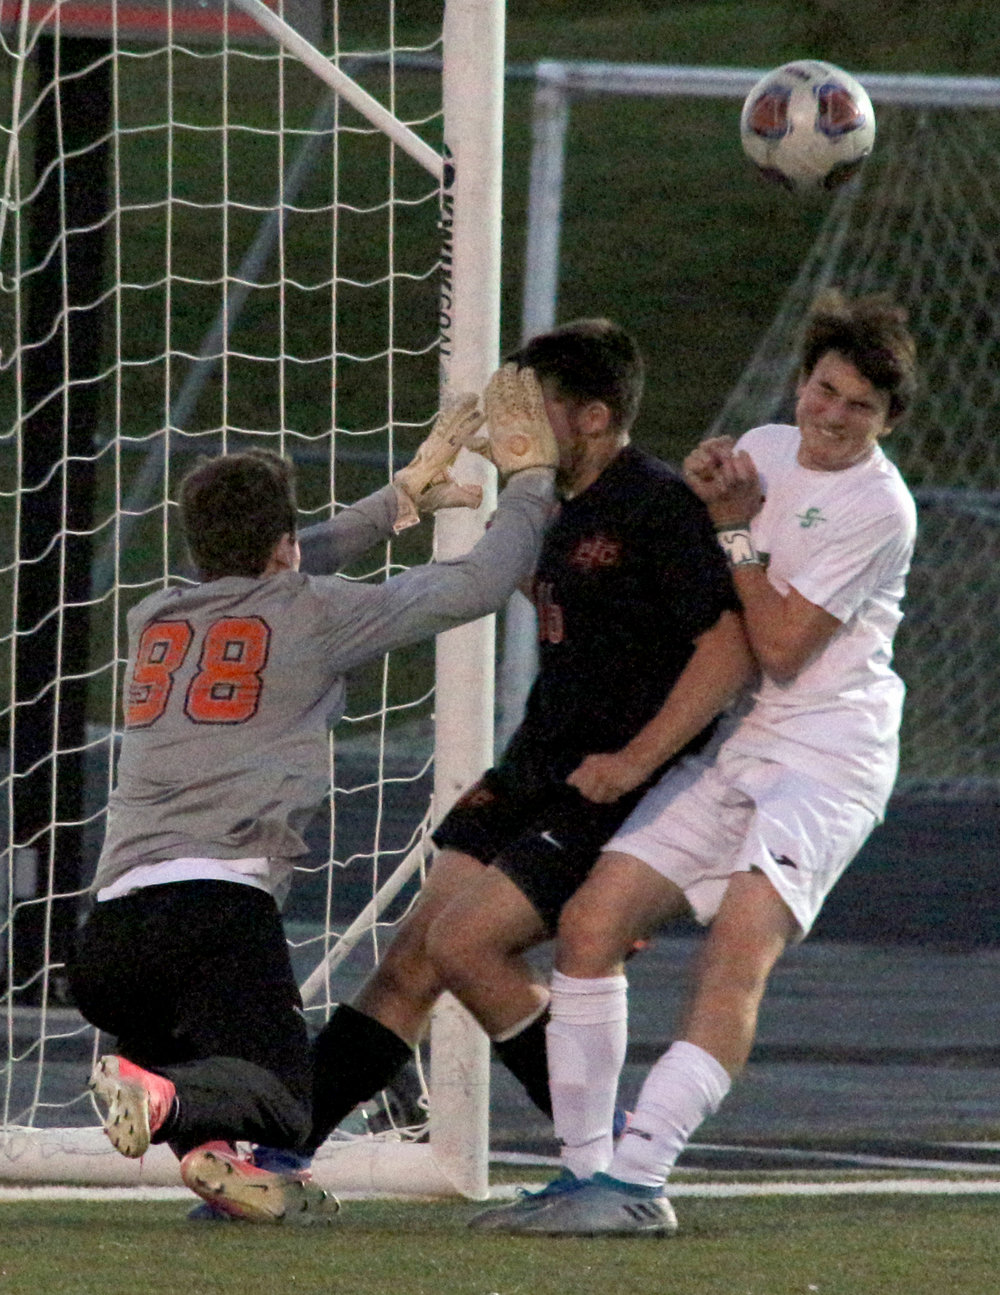 ROSS MARTIN/Citizen photo Platte County senior goalkeeper Turner Hess (88) punches a loose ball away against Smithville on Wednesday, Oct. 25 in Smithville, Mo.